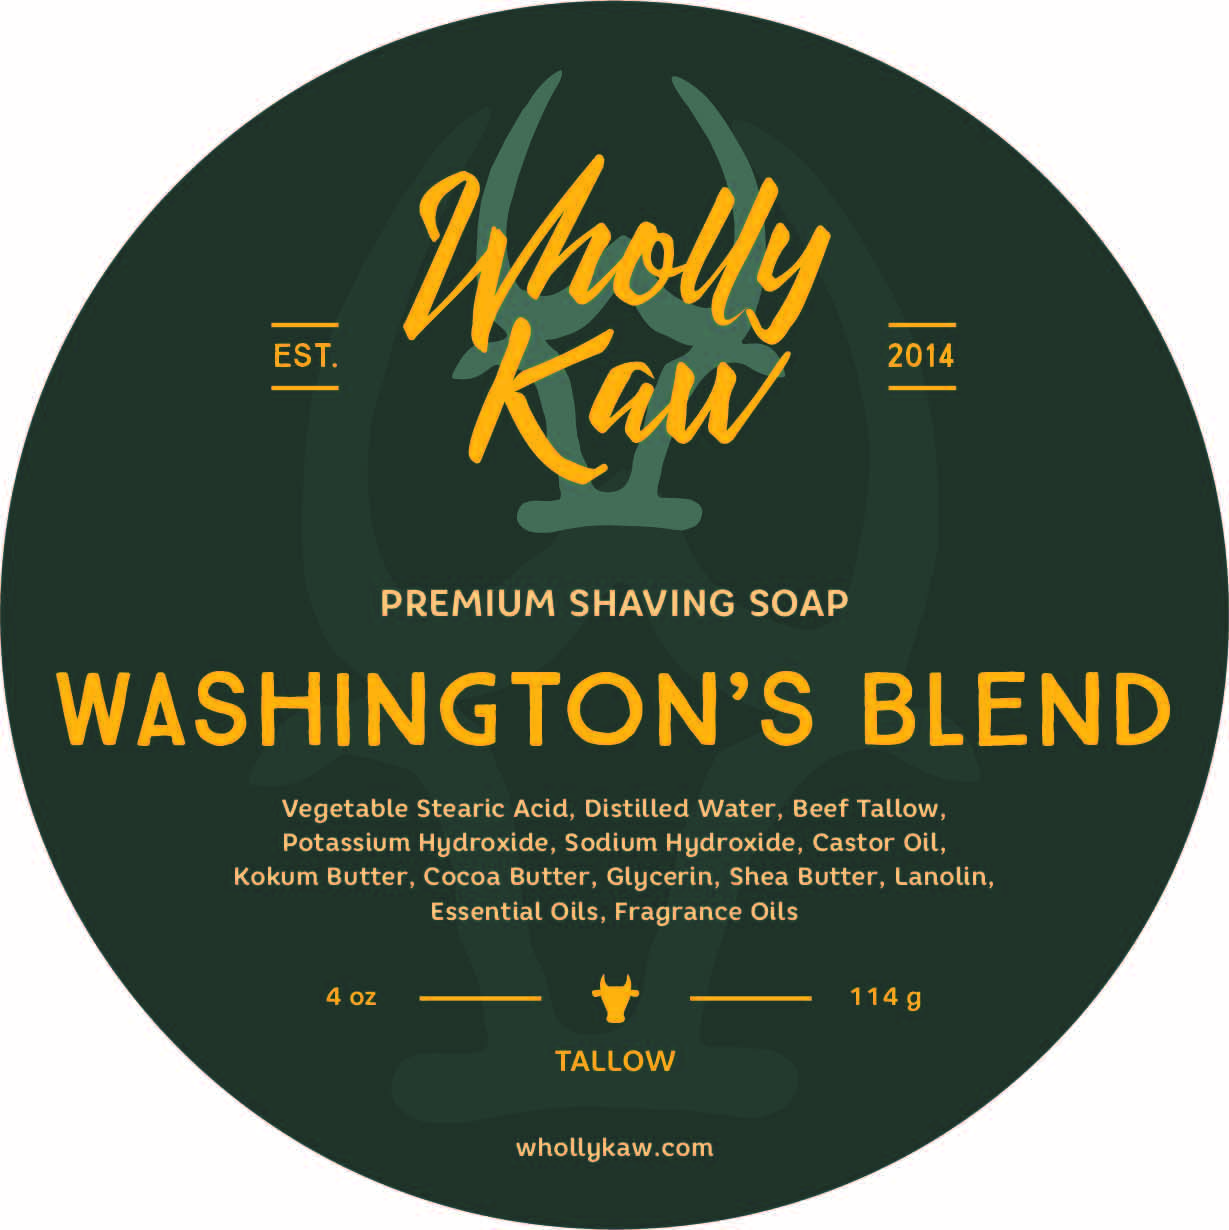 Wholly Kaw - Washington's Blend - Soap image